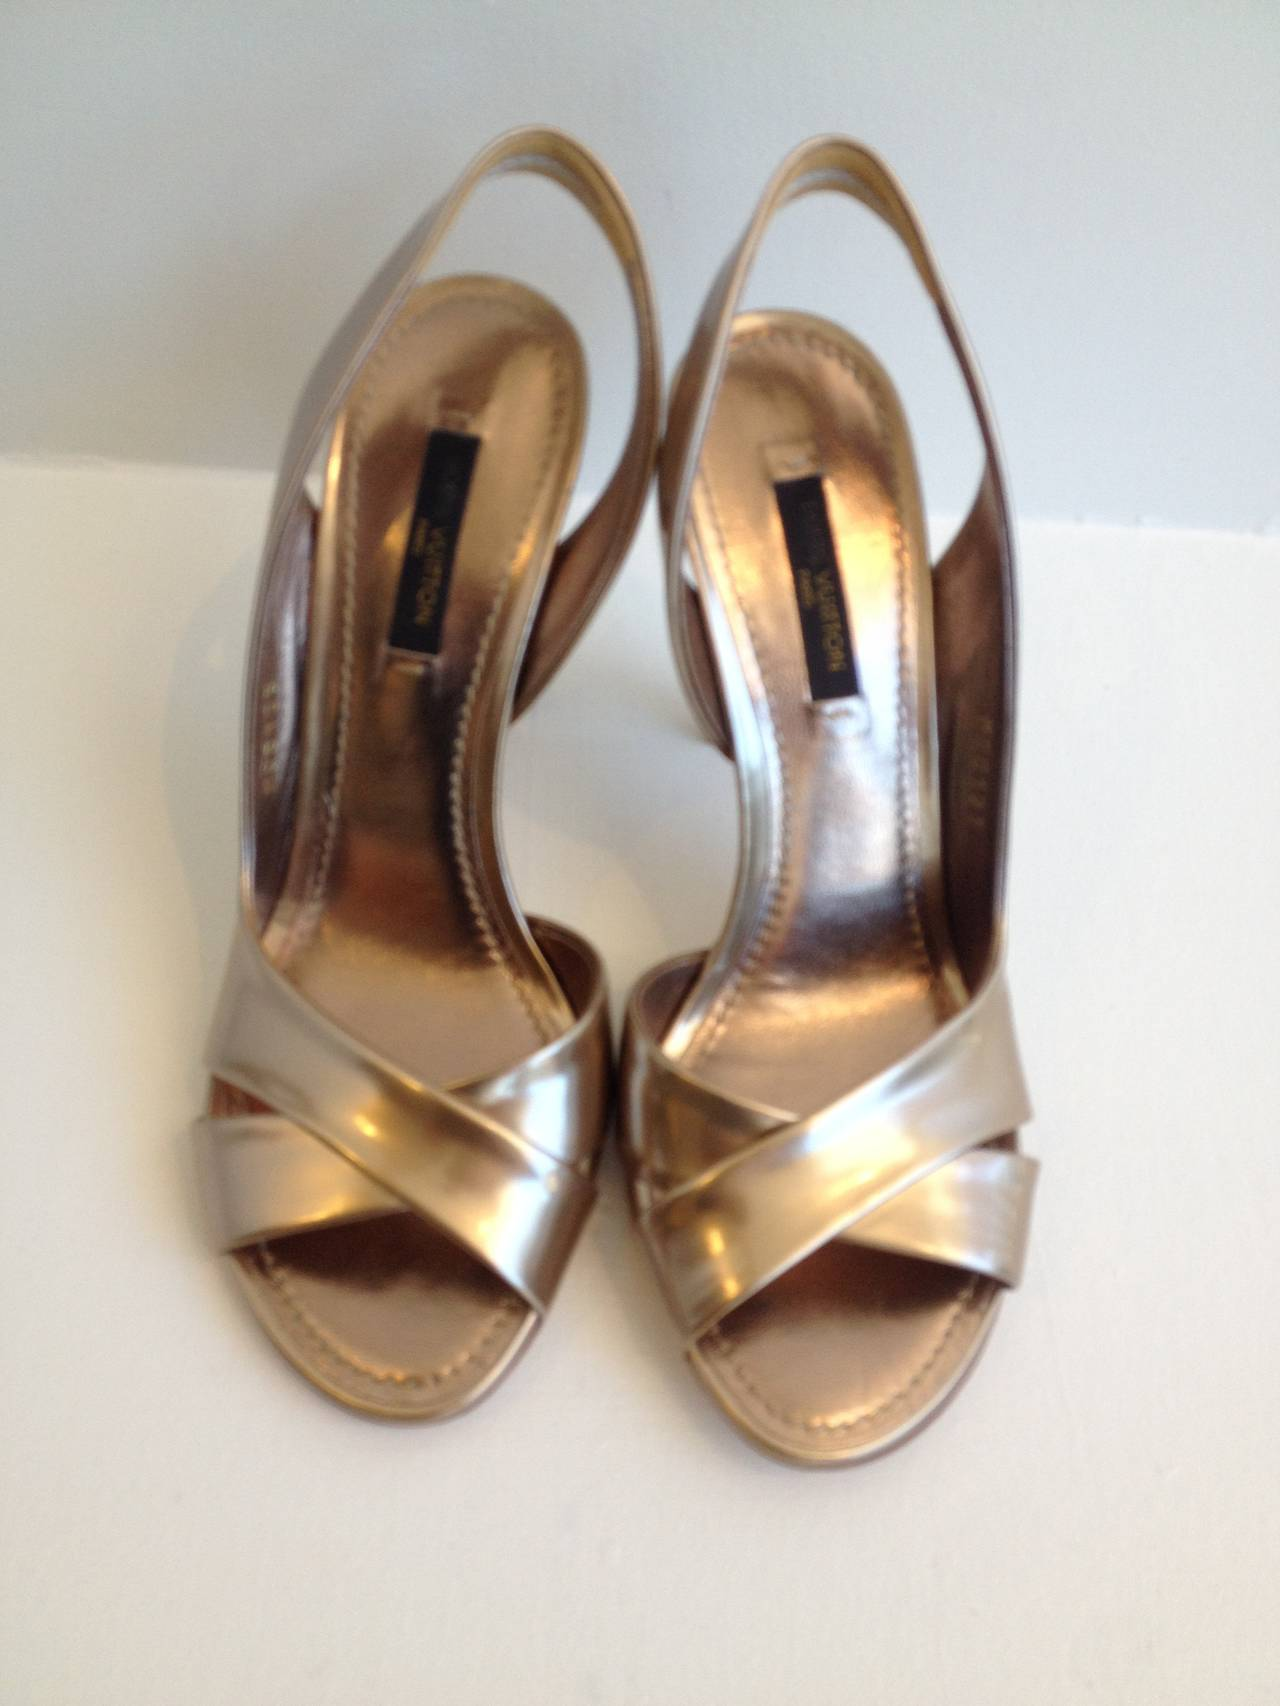 28630cfcd484 Louis Vuitton Gold Metallic Sandals For Sale. There s no better addition to  your wardrobe than a pair of high shine gold metallic Louis